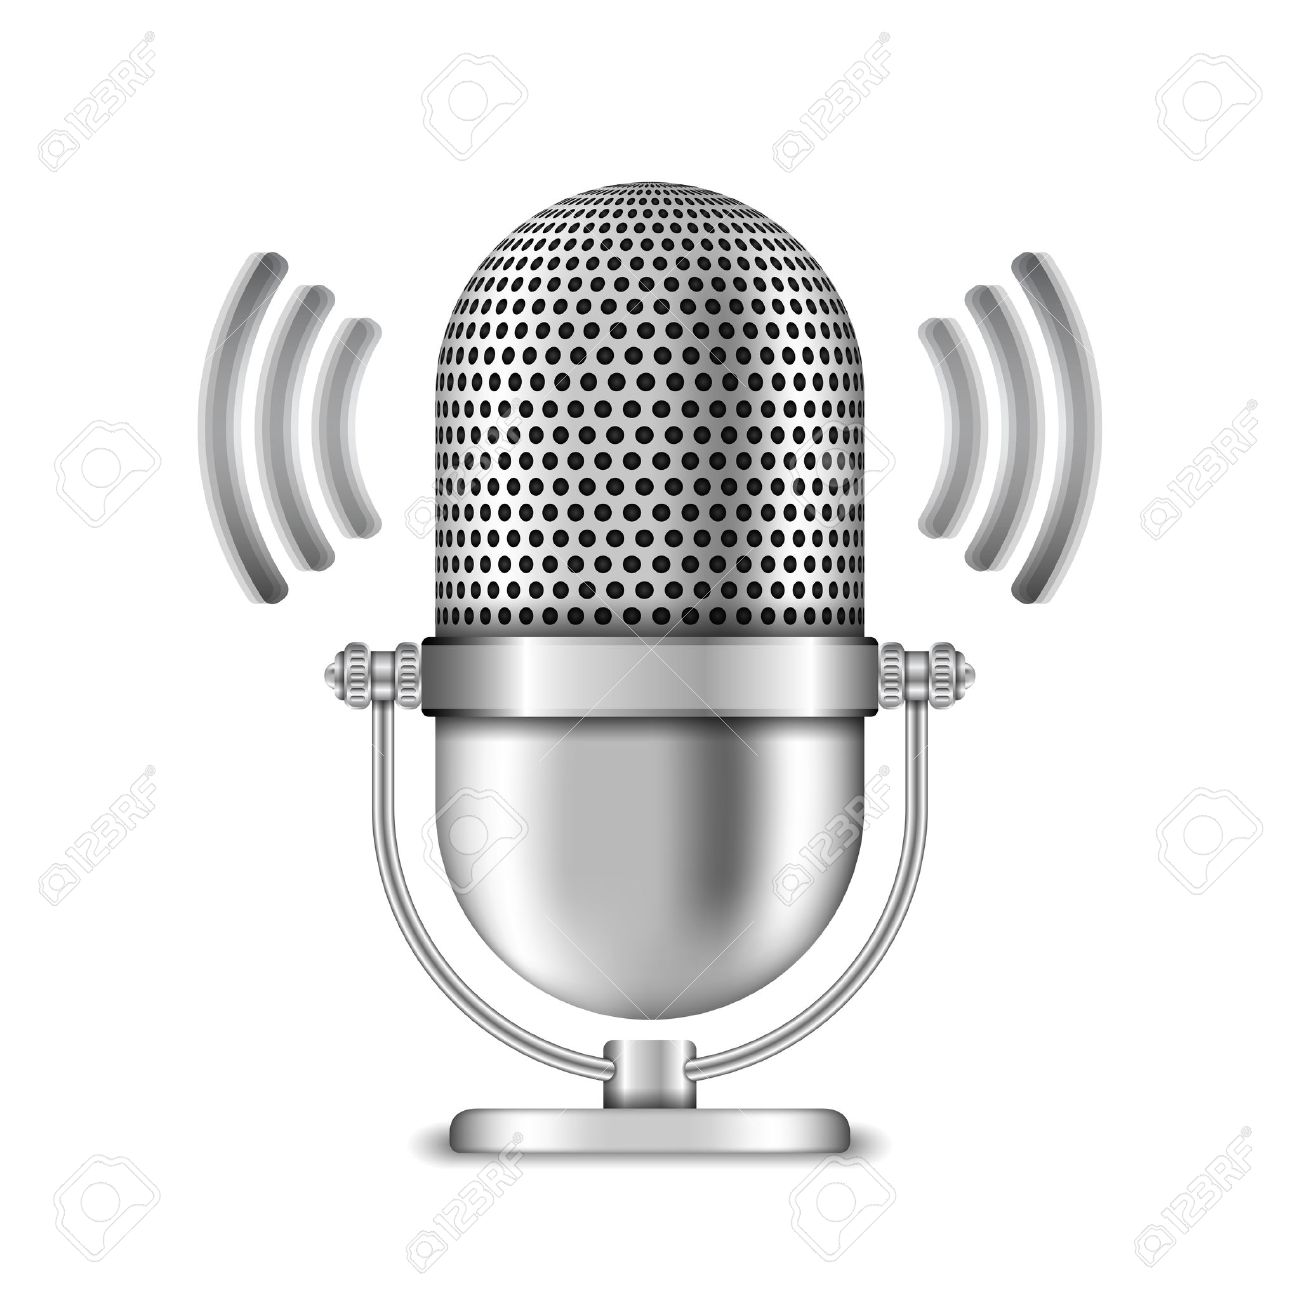 Microphone on white background - 46332275